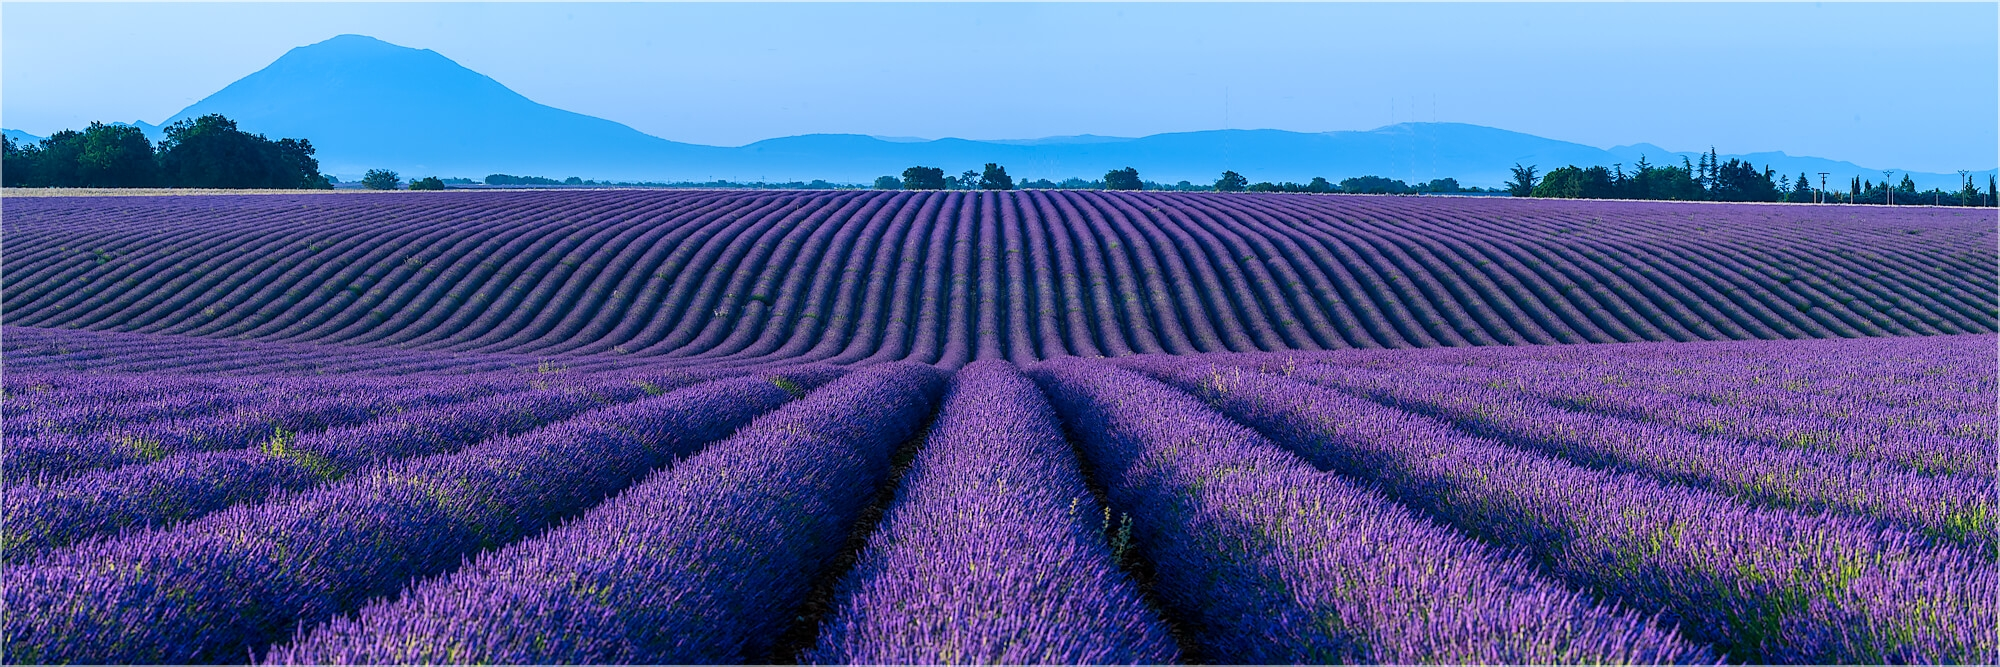 Panoramabild Lavendel in der Provence Frankreich